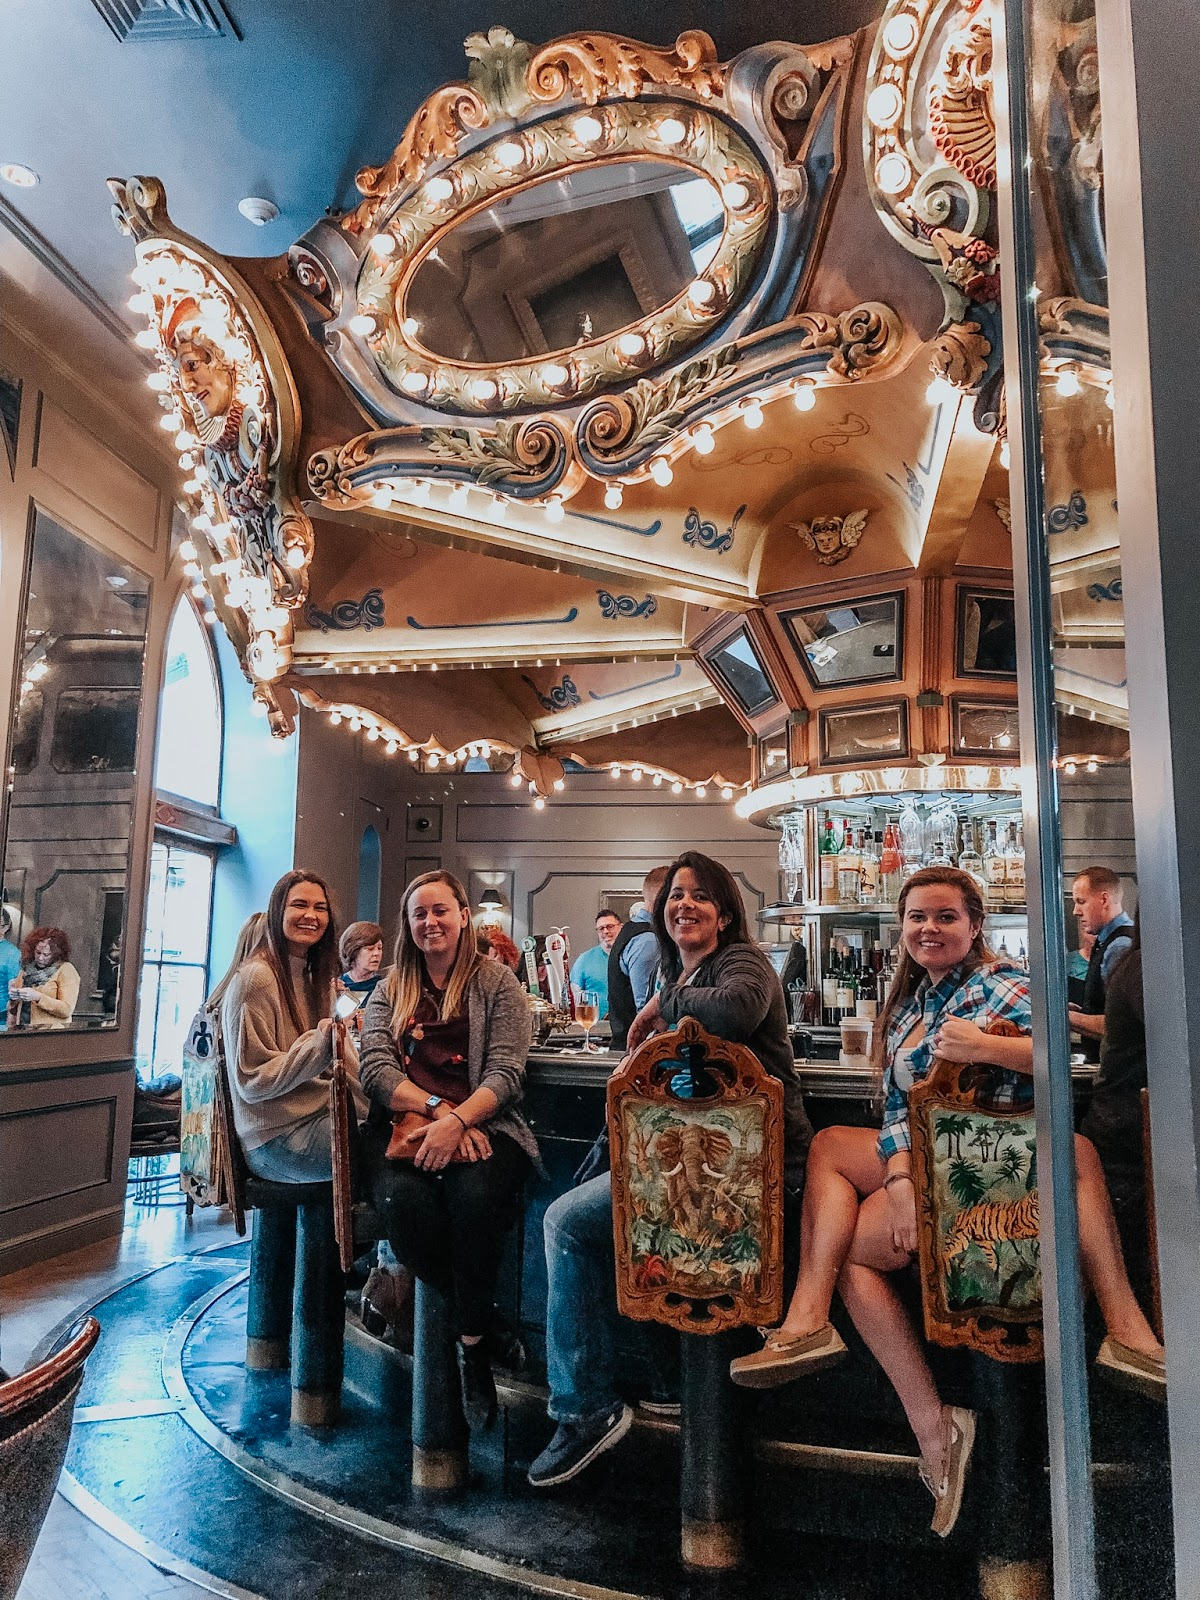 Friends at The Carousel Bar located inside of the Hotel Monteleone in New Orleans